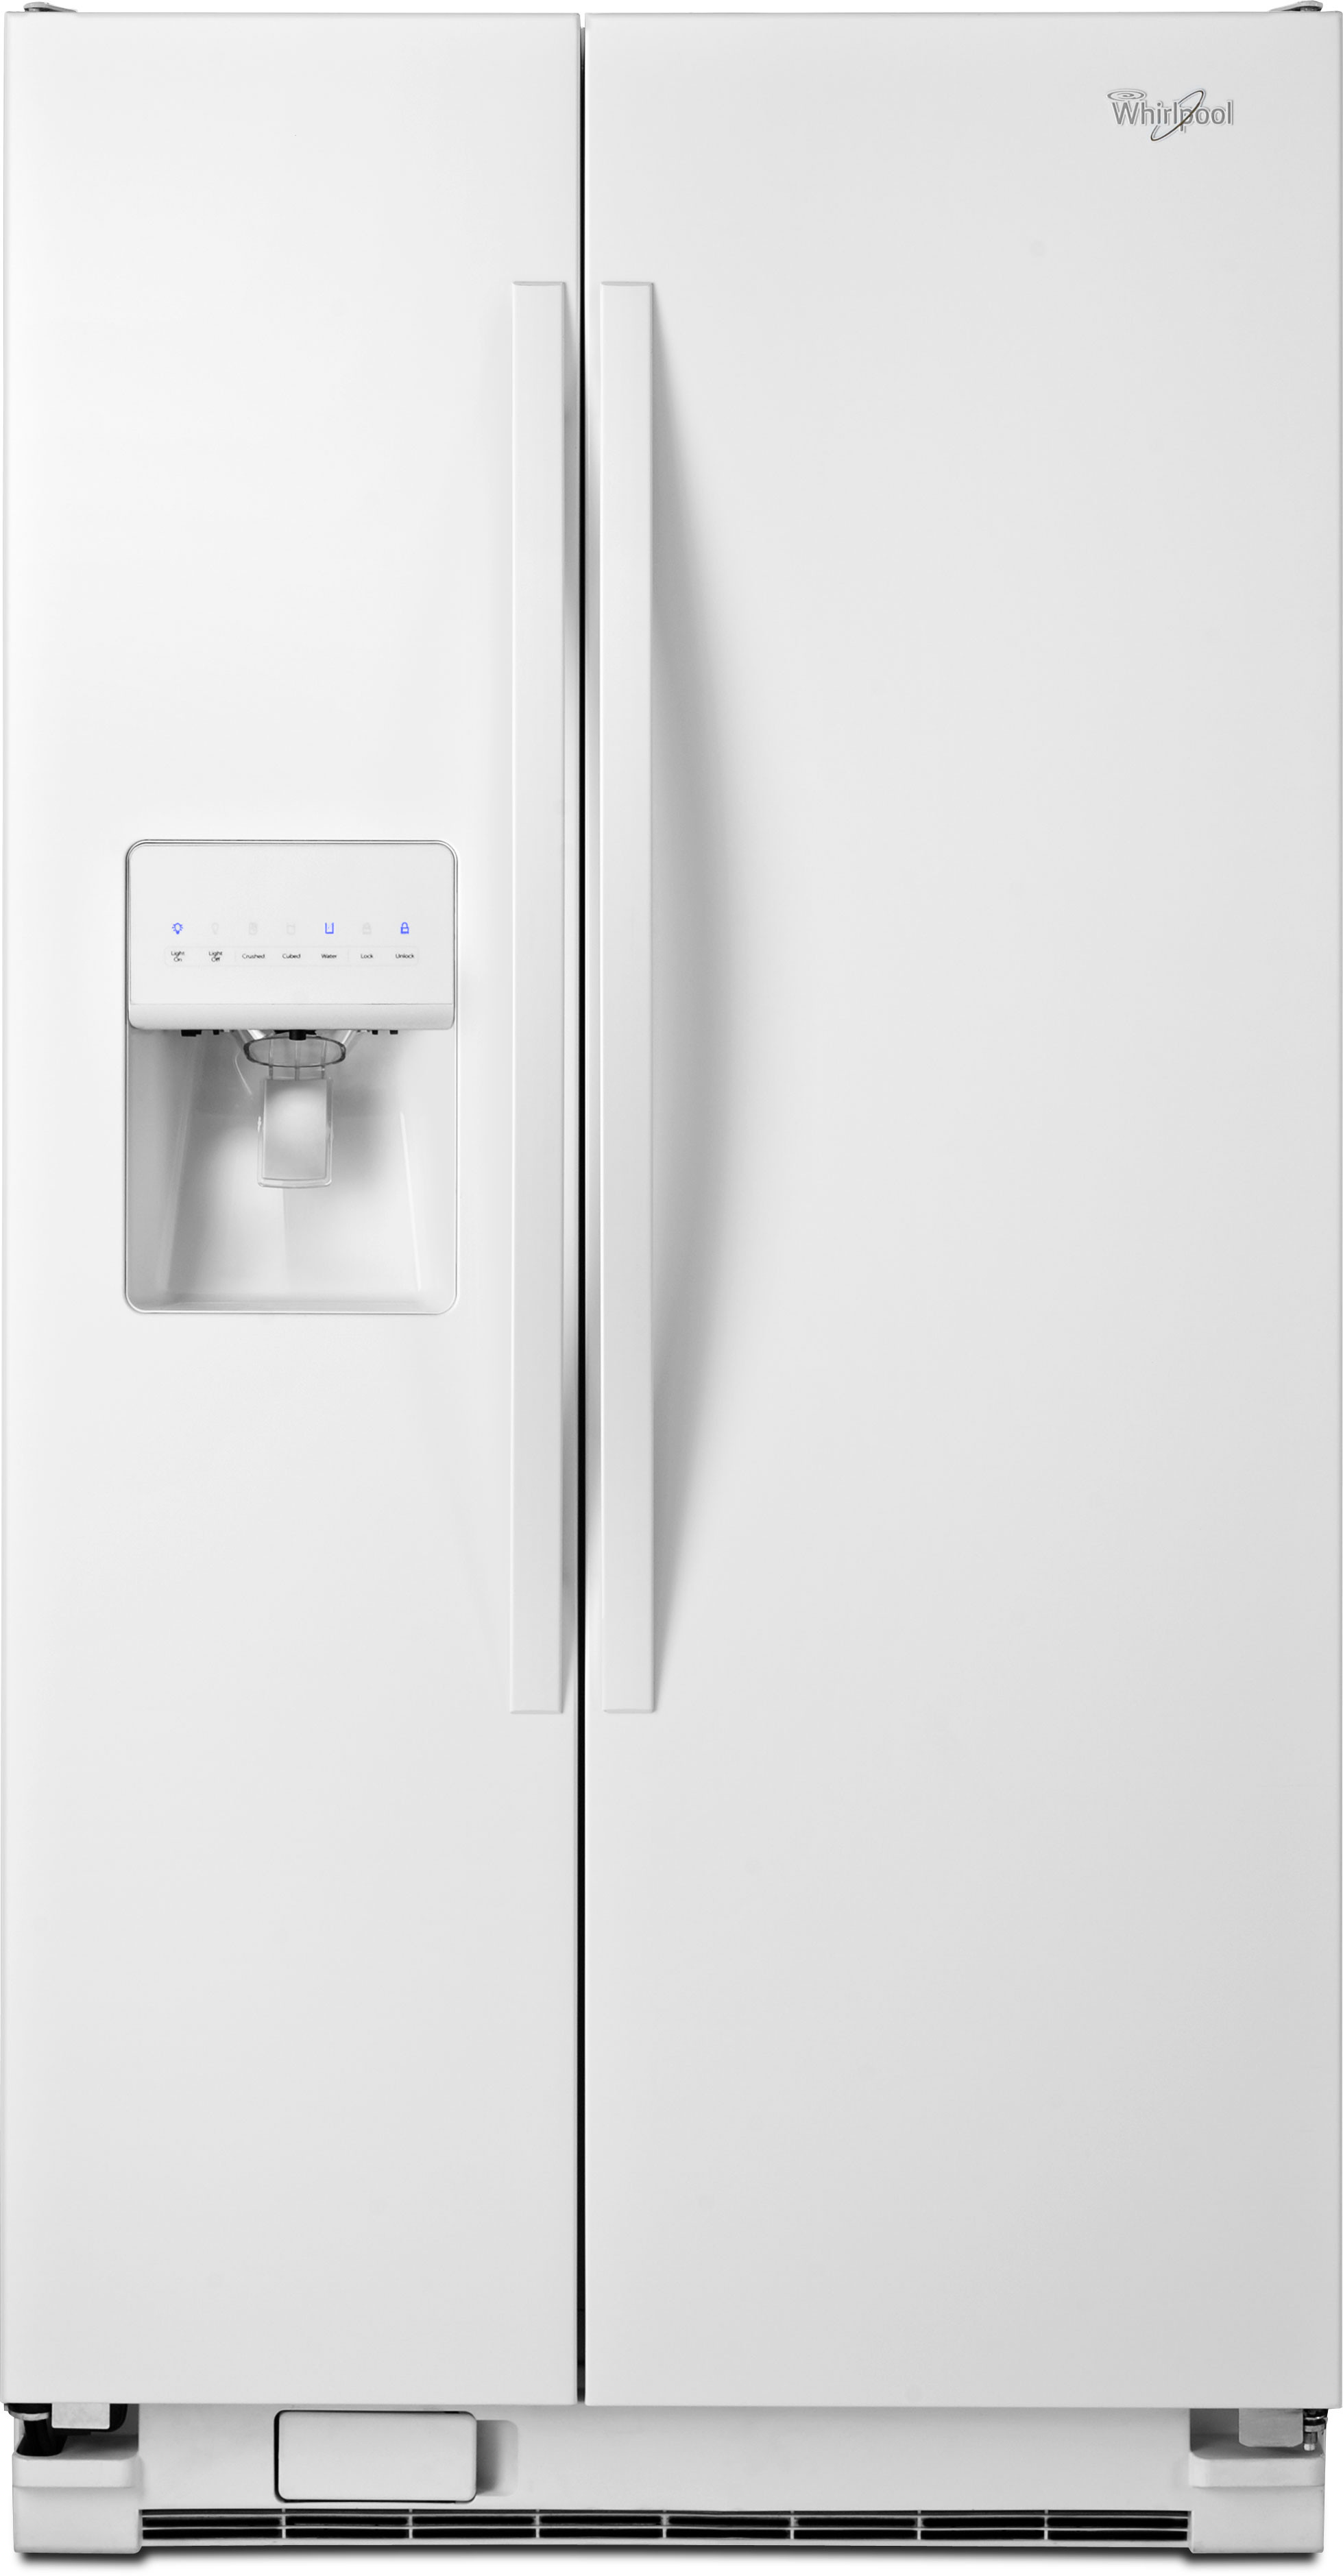 Ge 30 inch side by side white refrigerator - Ge 30 Inch Side By Side White Refrigerator 4